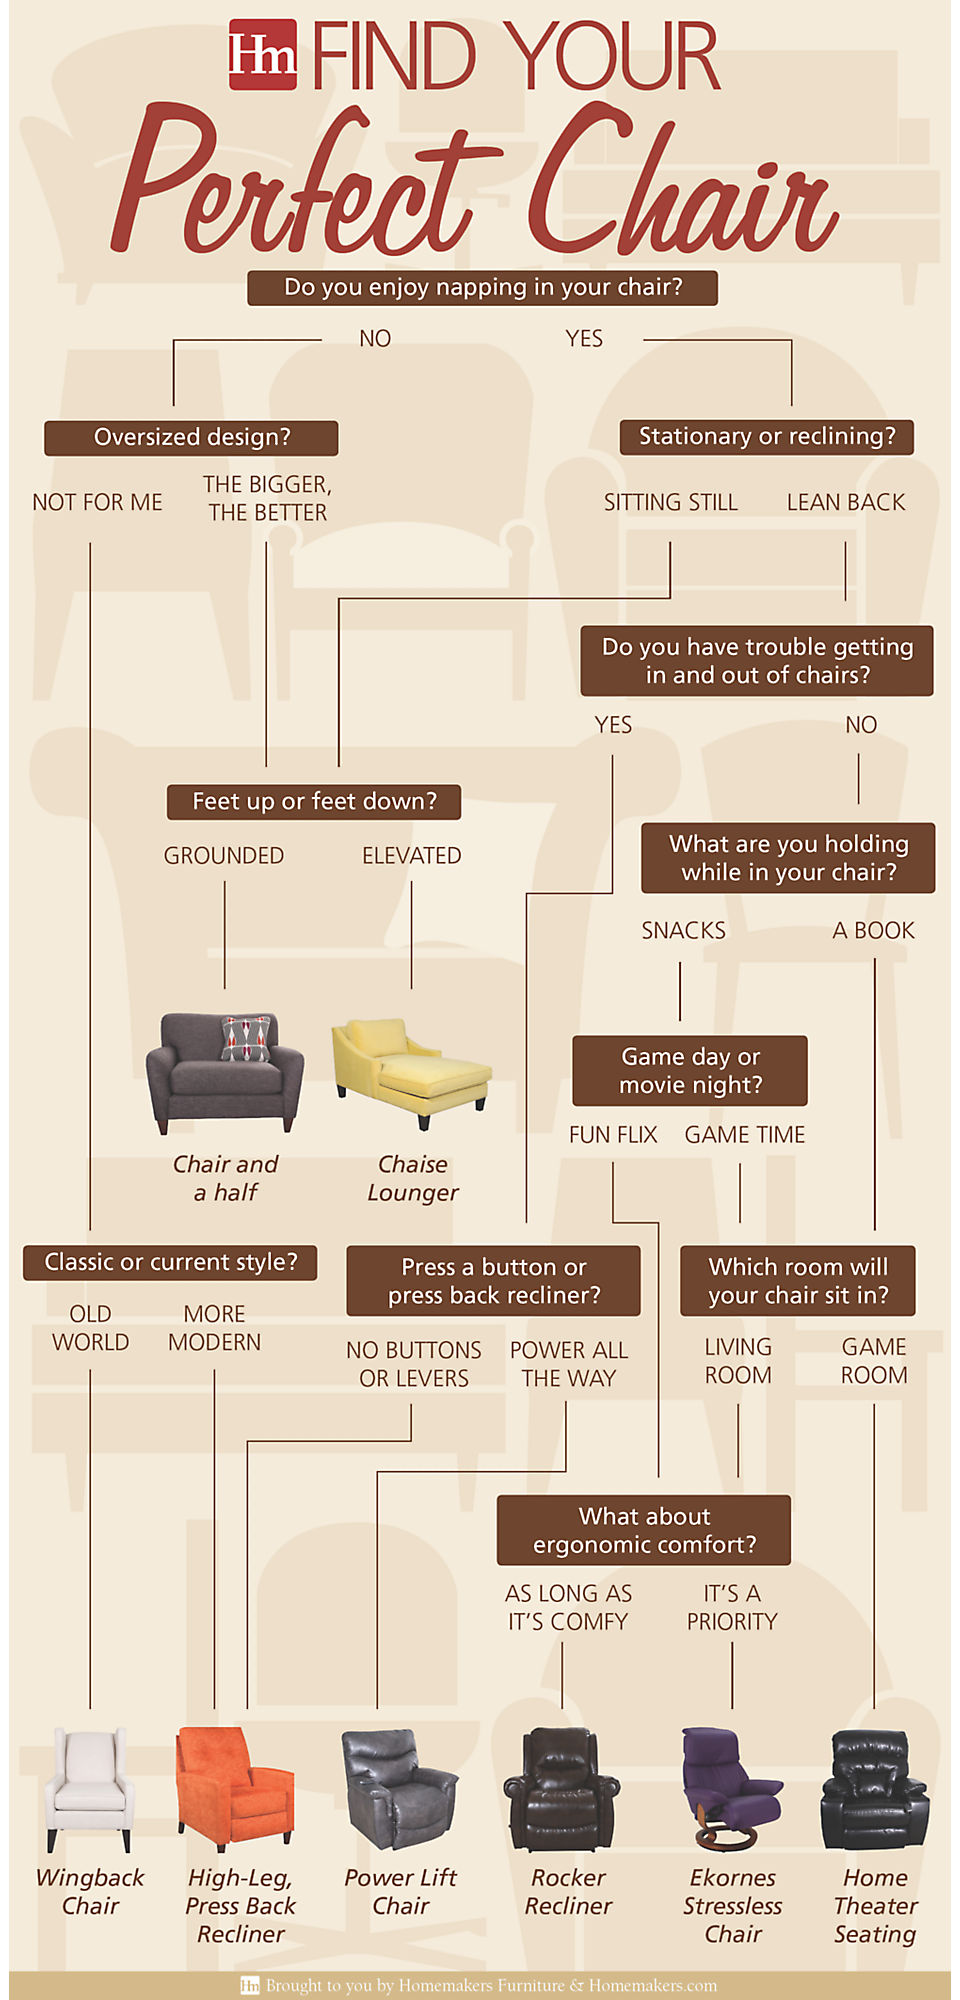 Take our fun quiz to discover the best chair to match your lifestyle and comfort preferences.